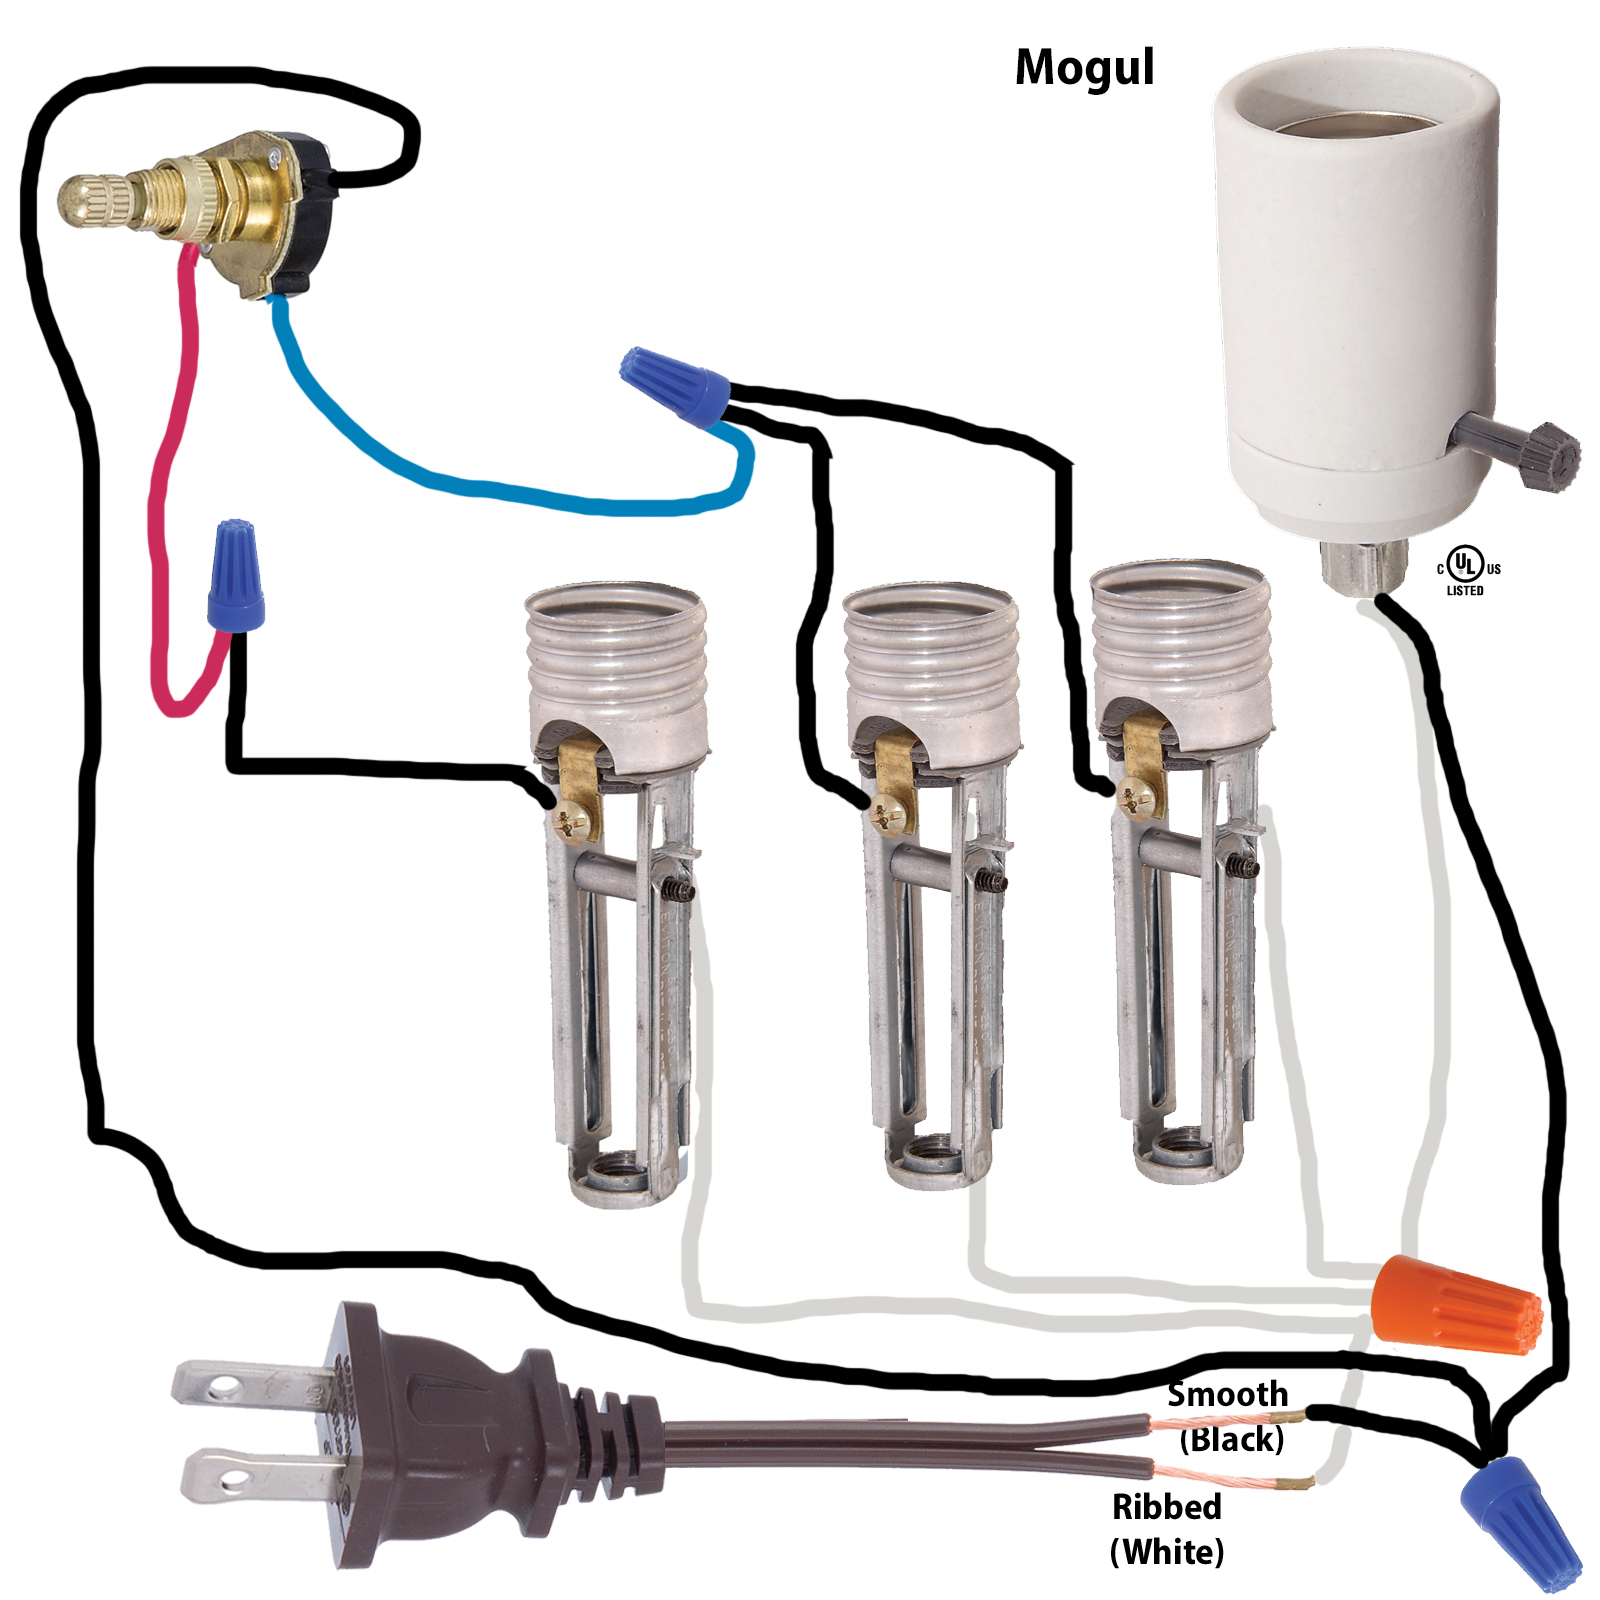 hight resolution of floor lamp with mogul socket and 3 way switch wiring diagram